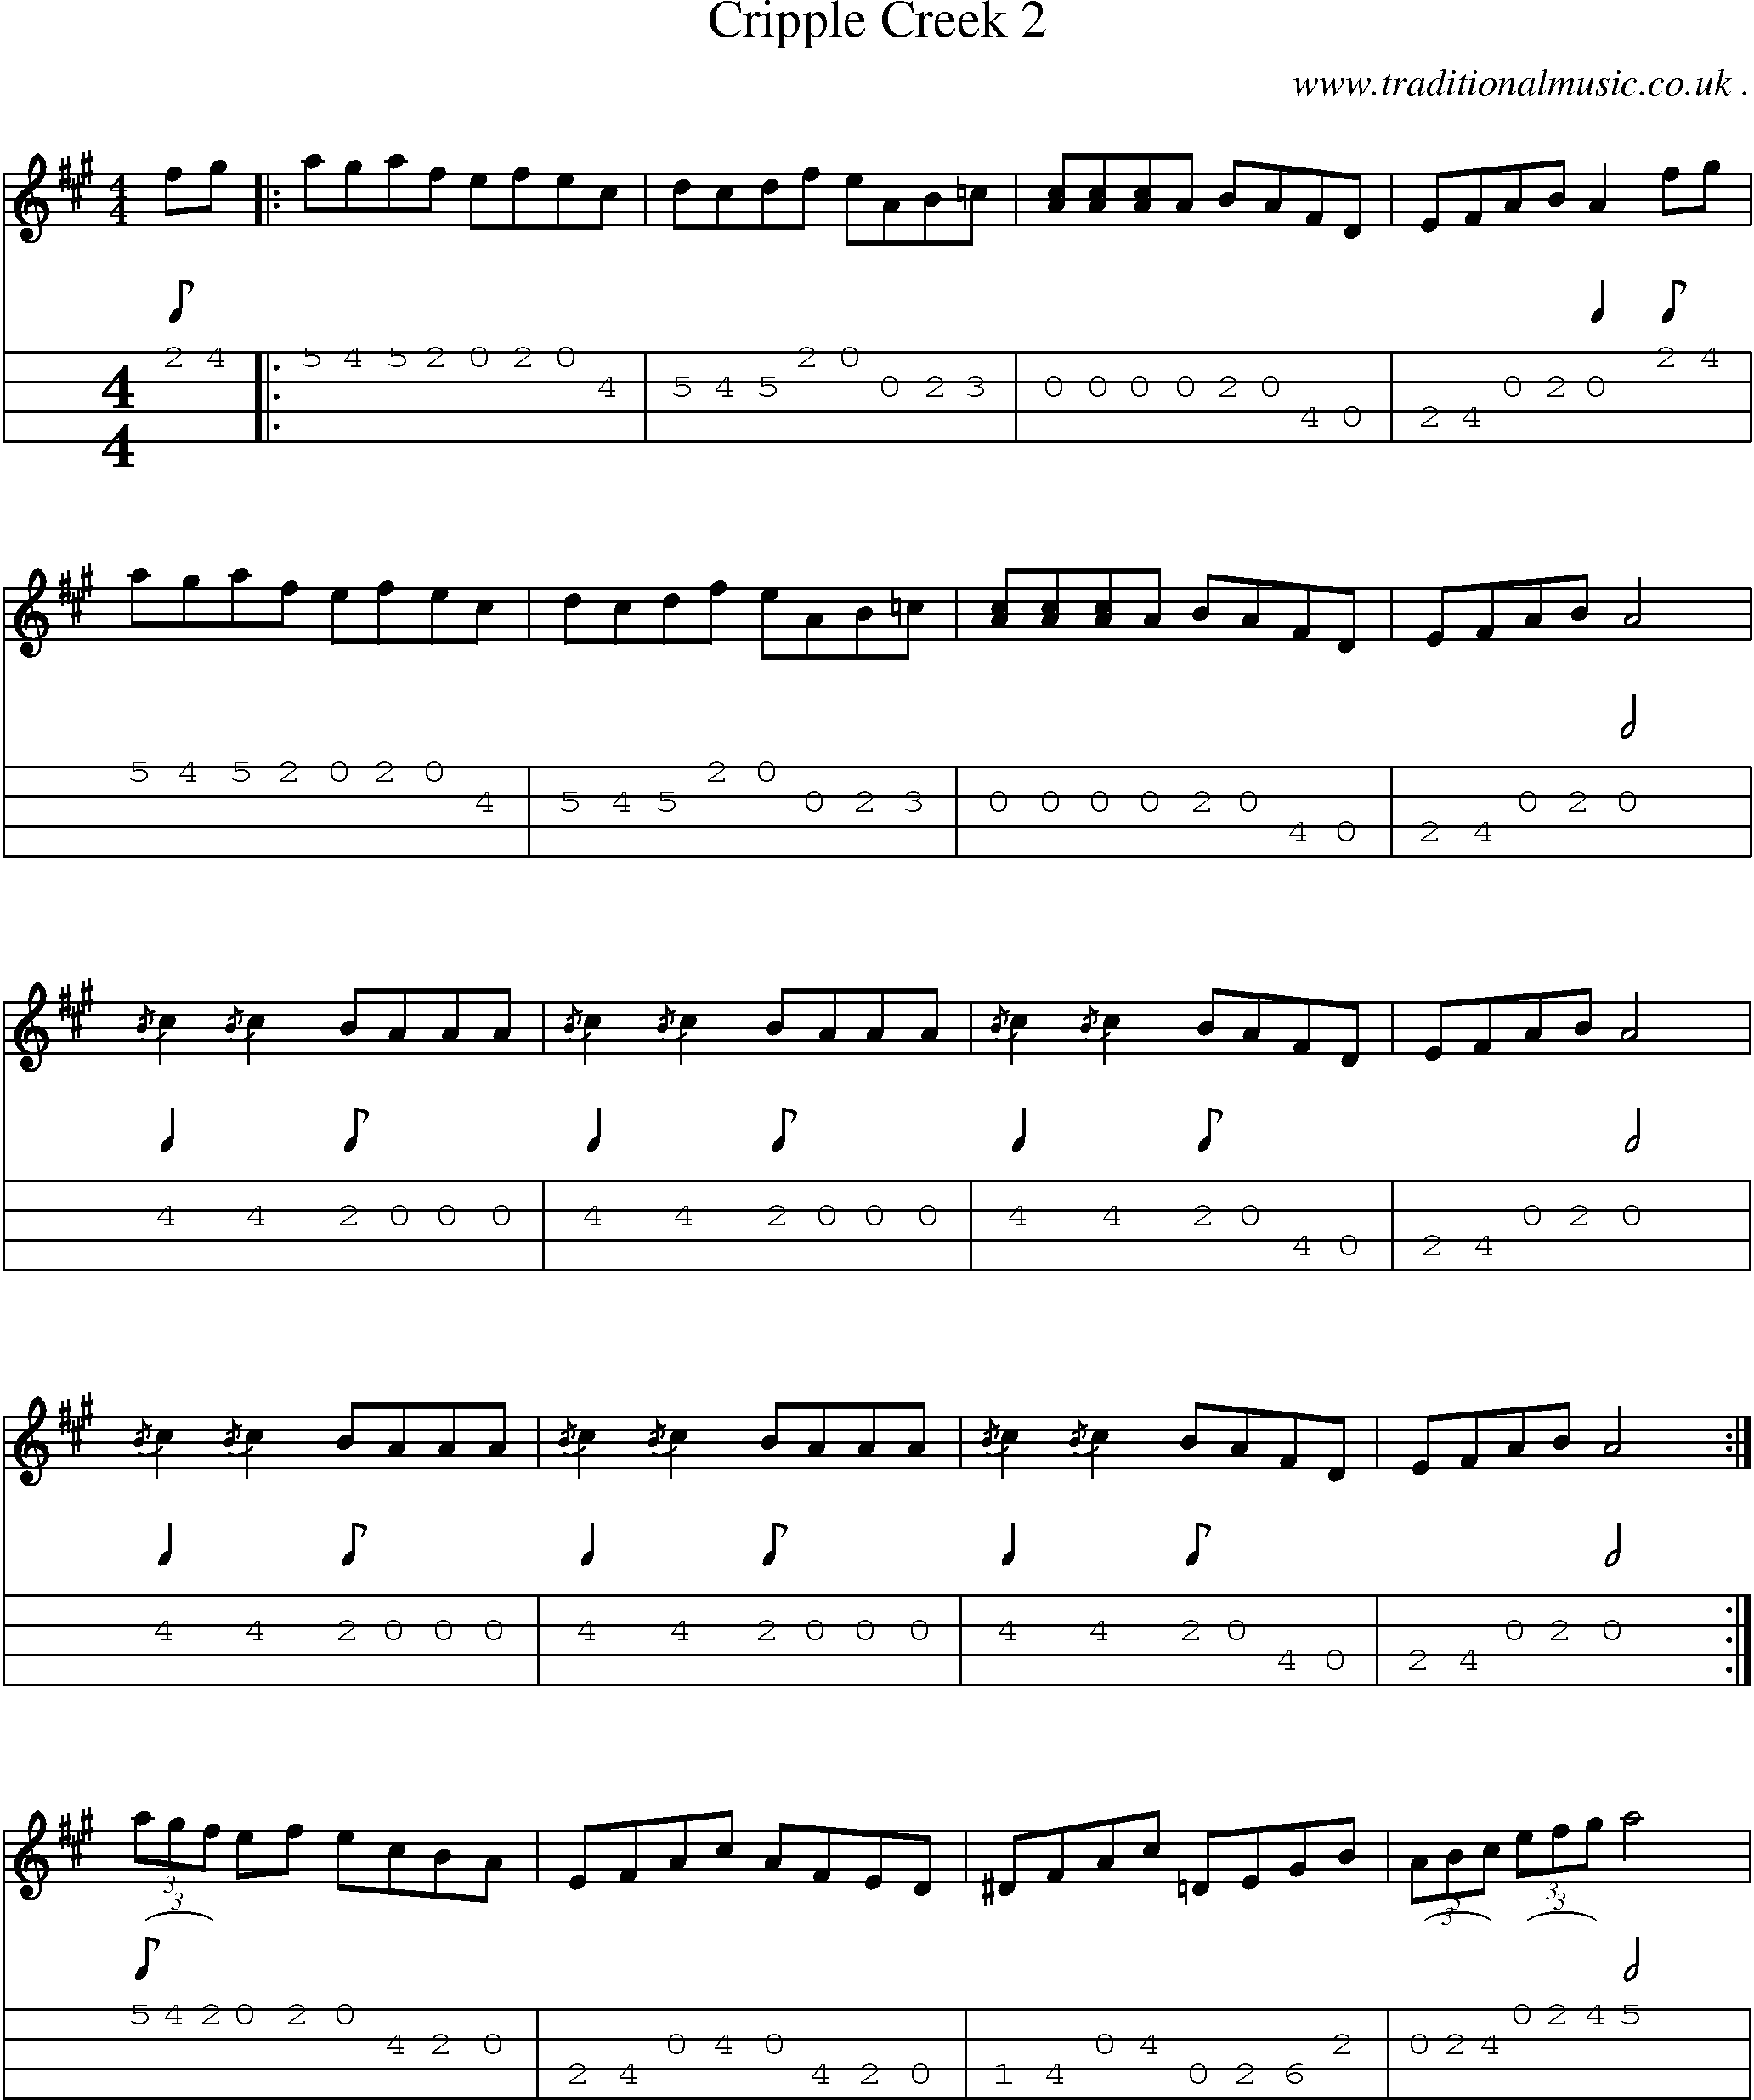 American Old-time music, Scores and Tabs for Mandolin - Cripple Creek 2